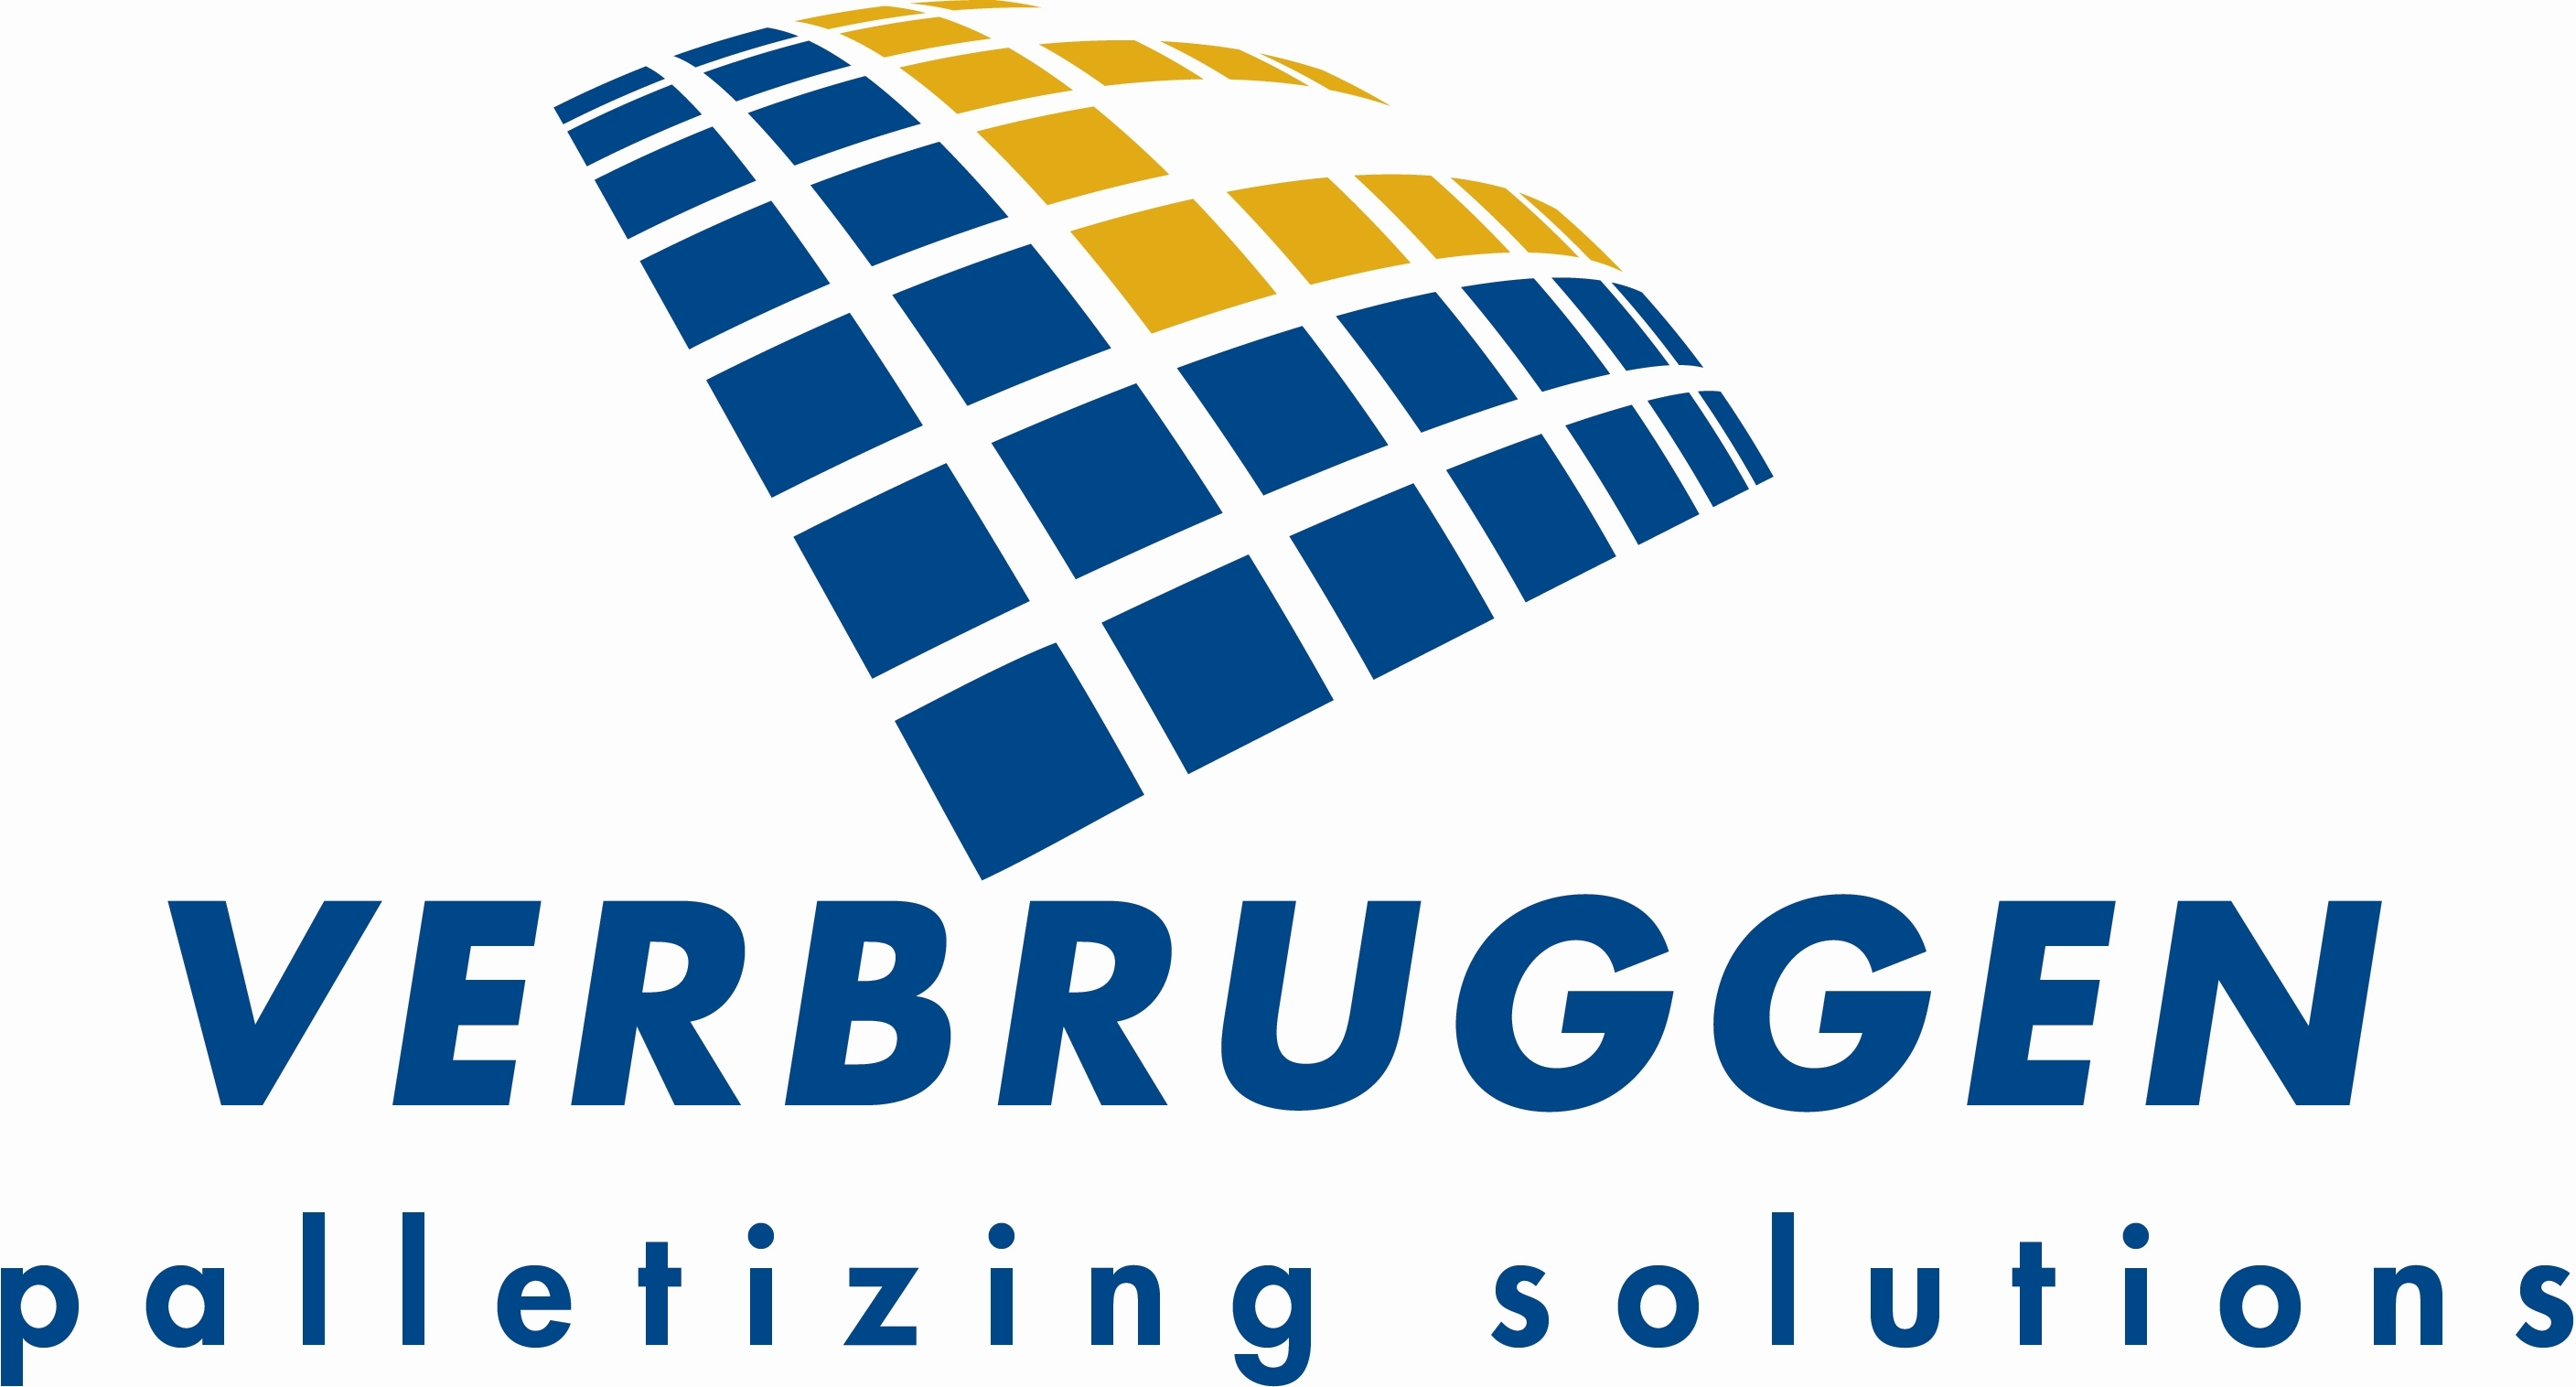 Verbruggen-logo.jpg